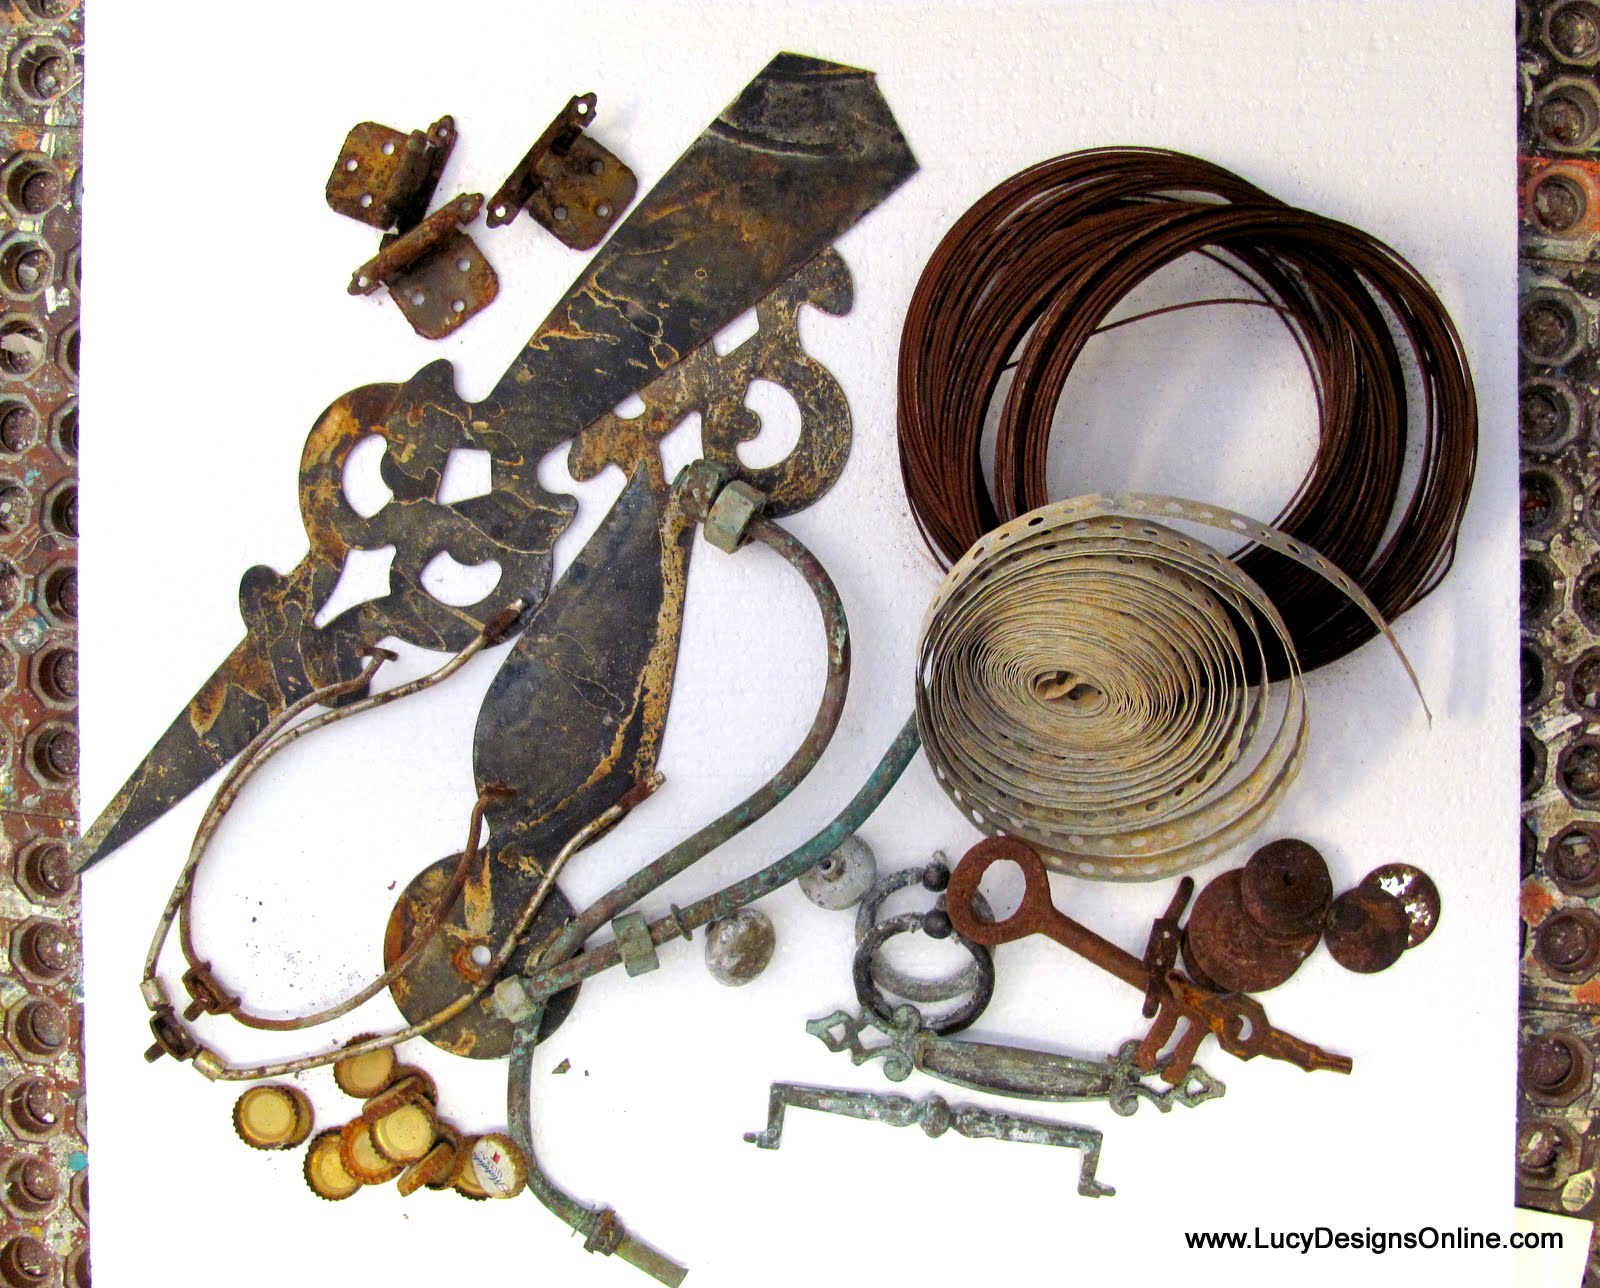 How I Give Metal And Wire Pieces An Aged Rusty Patina Using Vinegar